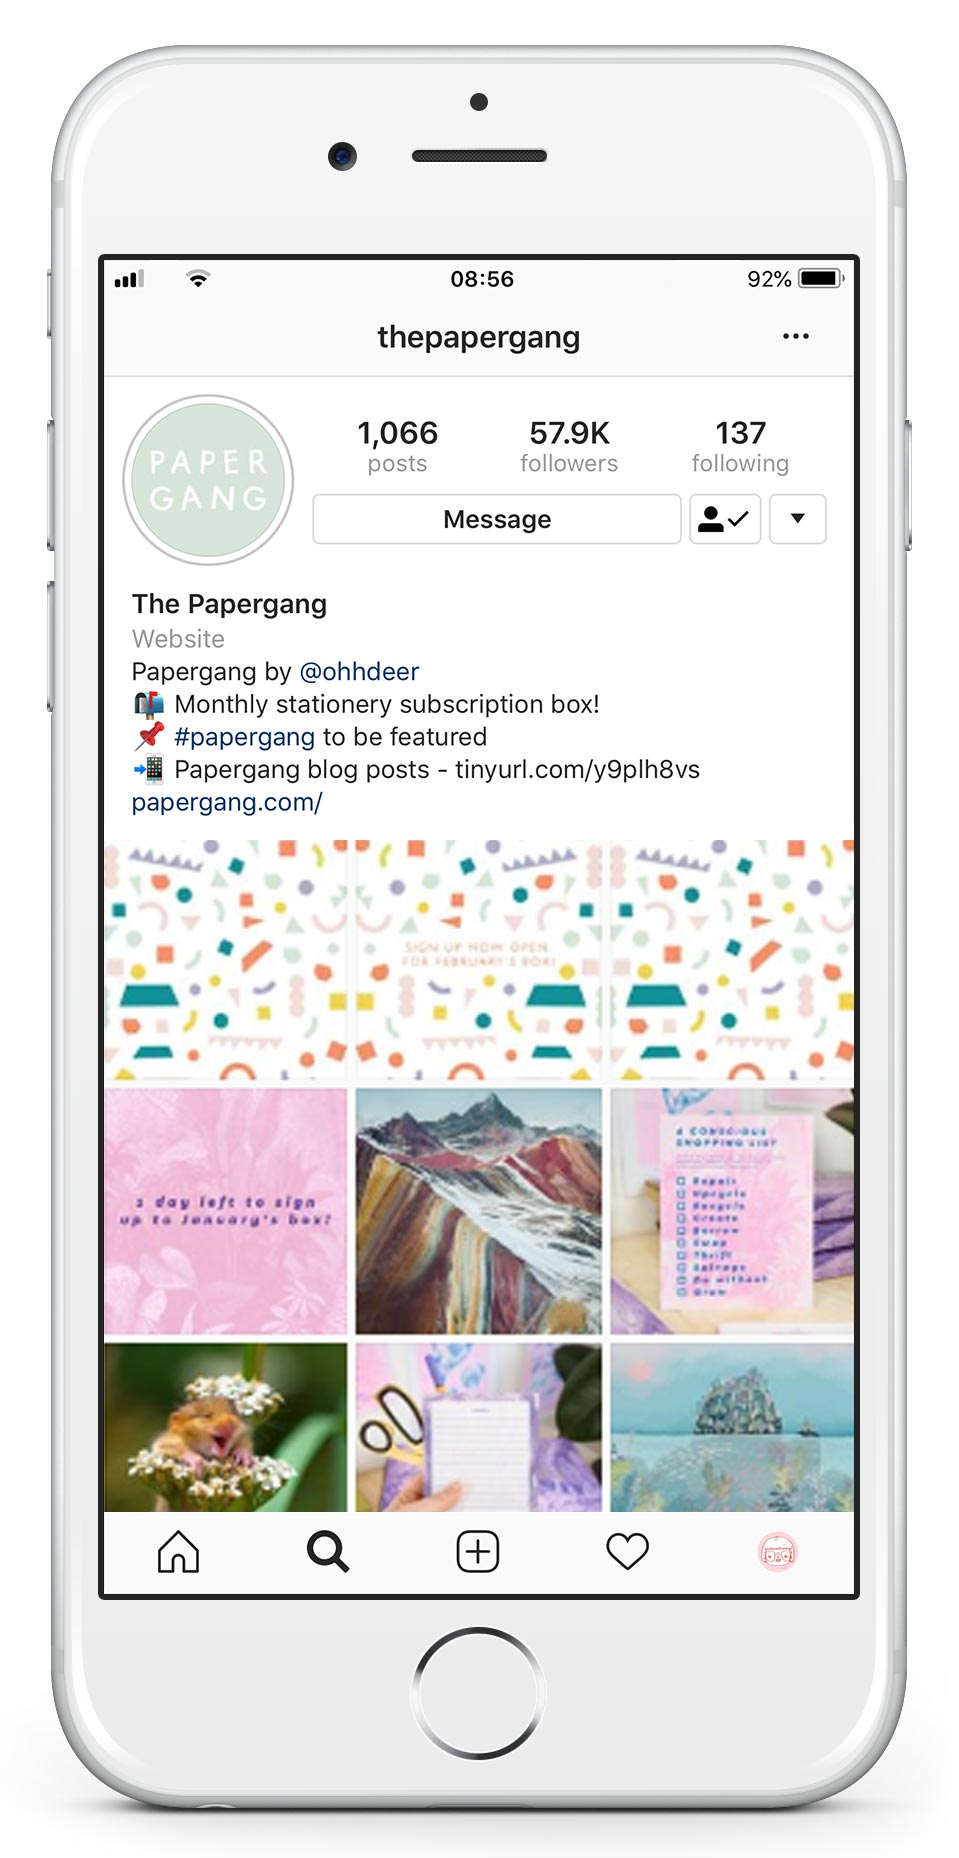 @thepapergang - Follow the Papergang Instagram! Each month we curate our feed around each boxes theme, for February it's all about the Happy Vibes! Follow for bright colours, positive messages and quirky animations. Hit that follow button!